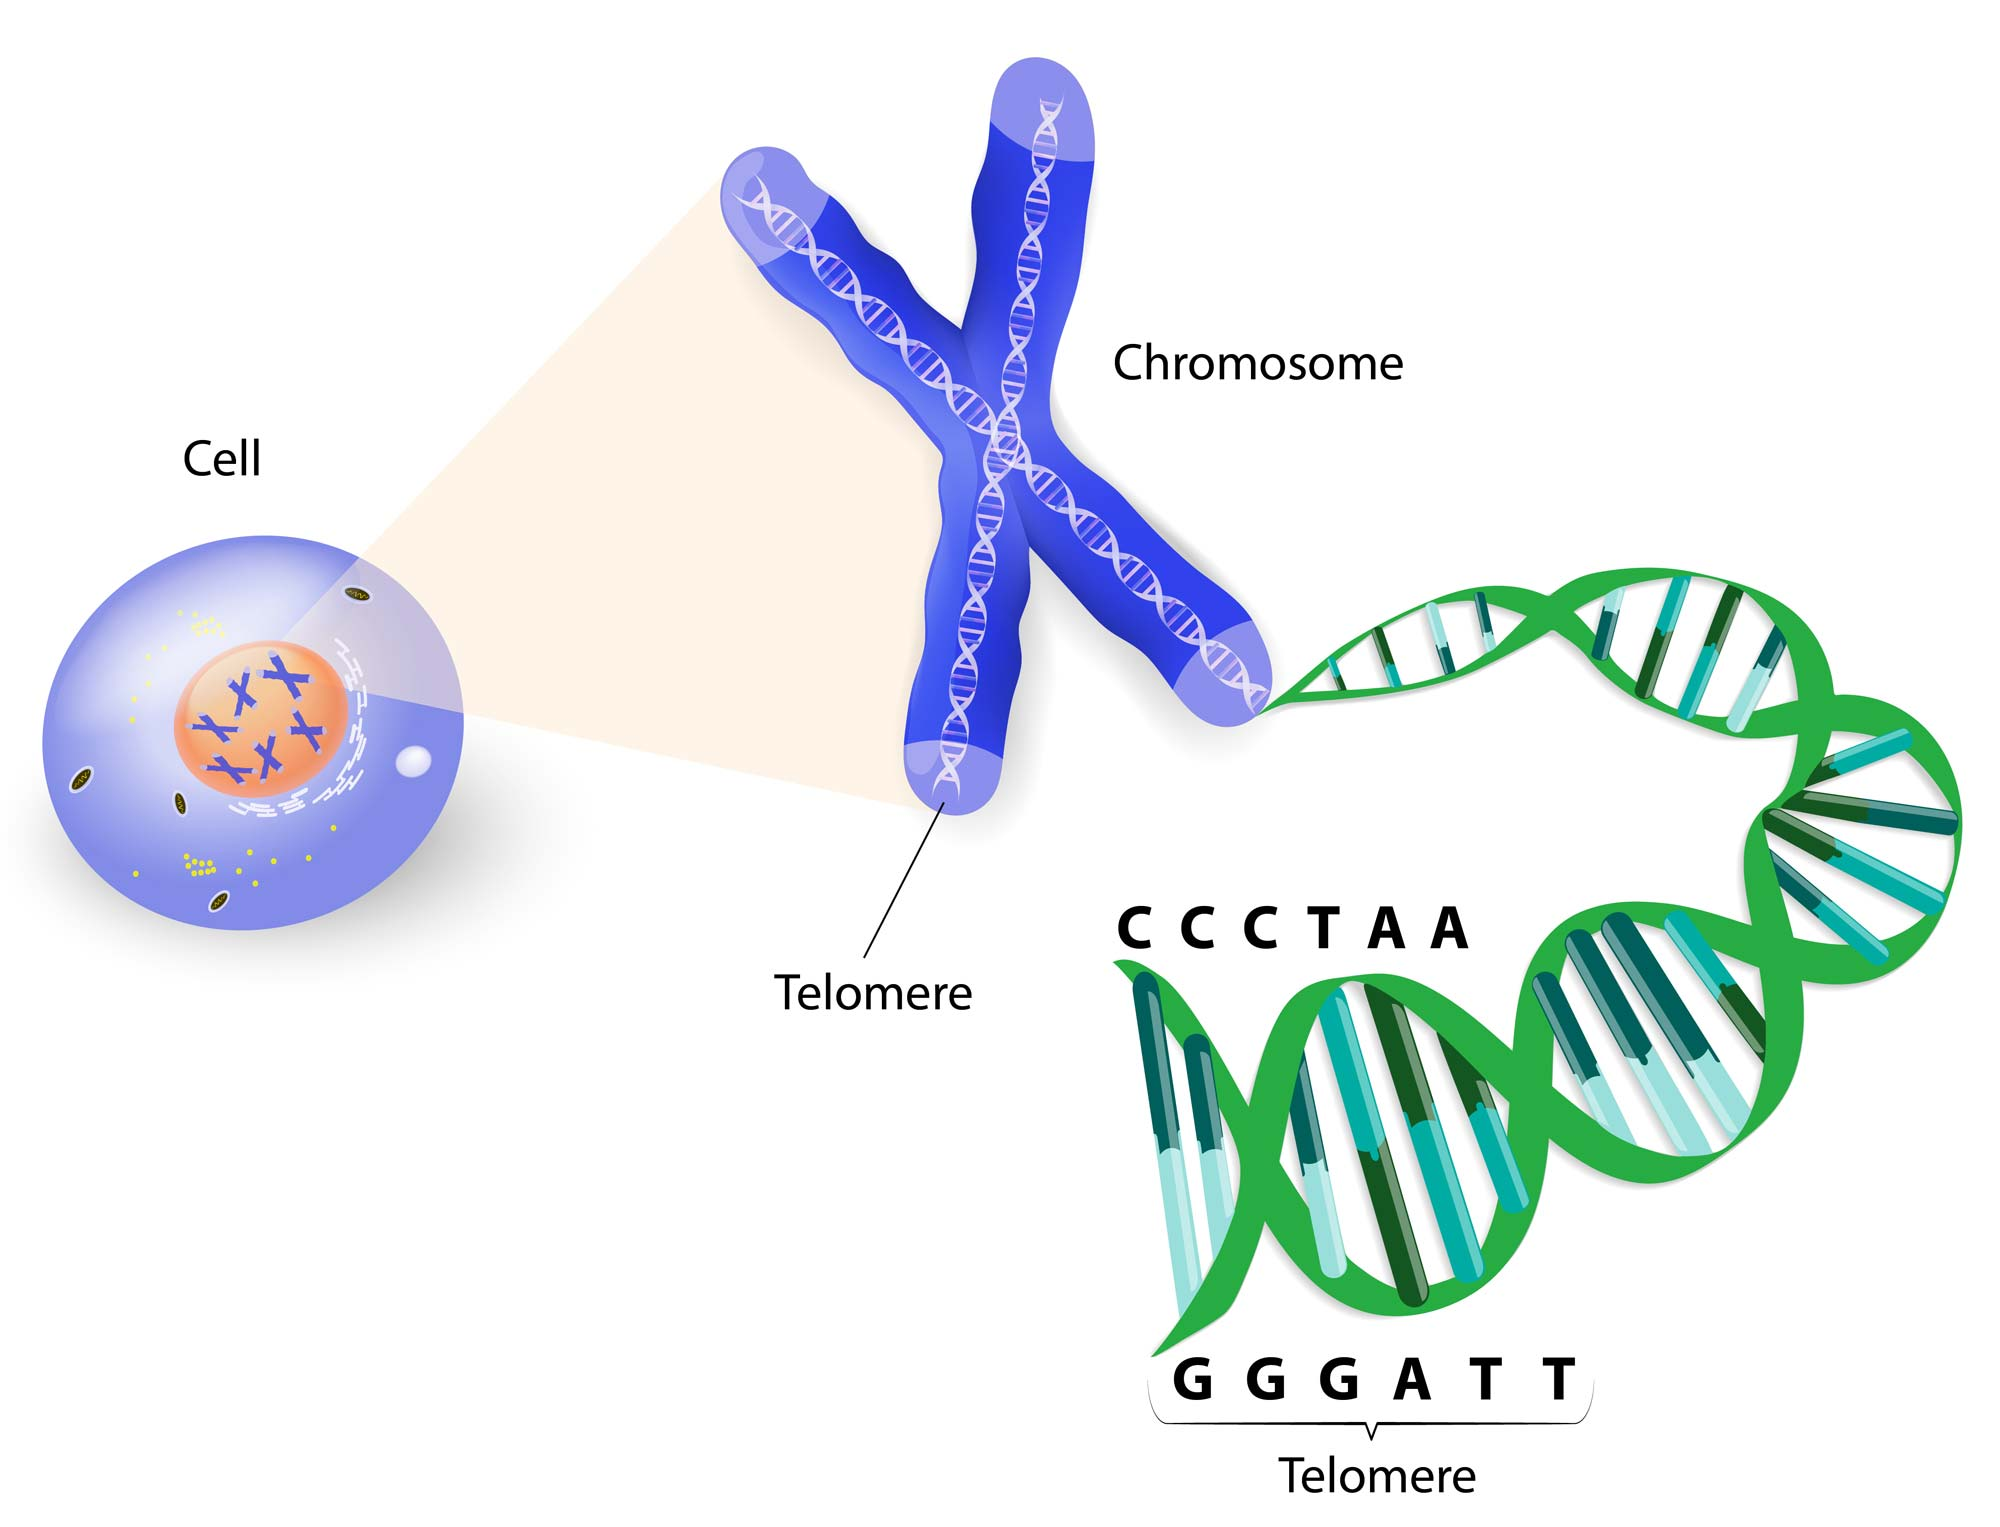 A telomere is a repeating sequence of double-stranded DNA located at the ends of chromosomes. Each time a cell divides, the telomeres become shorter. Eventually, the telomeres become so short that the cell can no longer divide. (stock image)